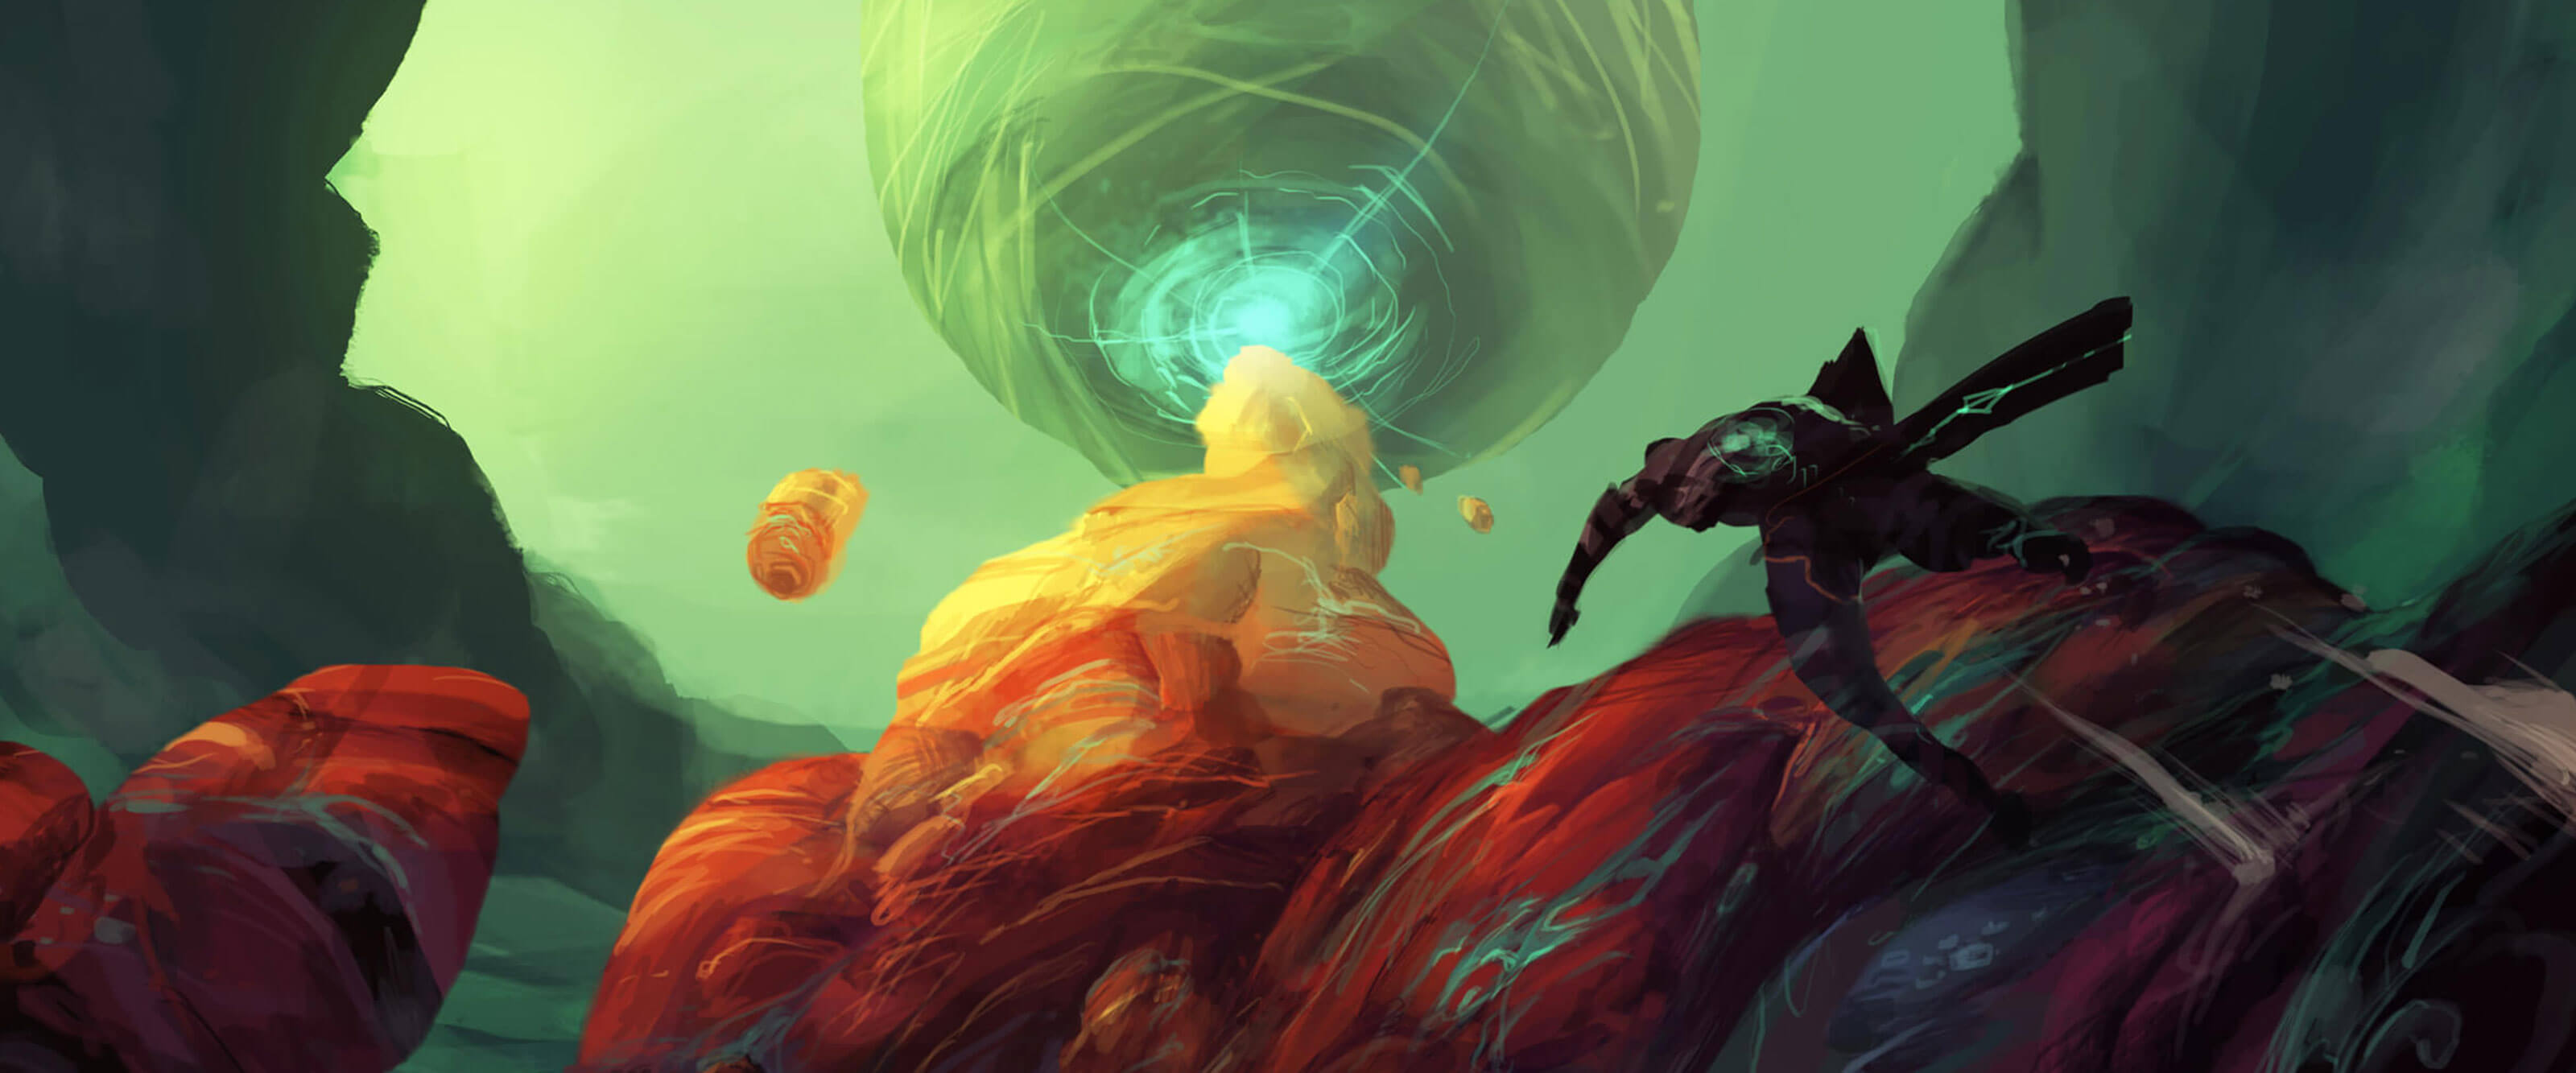 A figure runs up a multicolored stone outcropping toward a stony sphere hanging precariously against a hazy green alien sky.